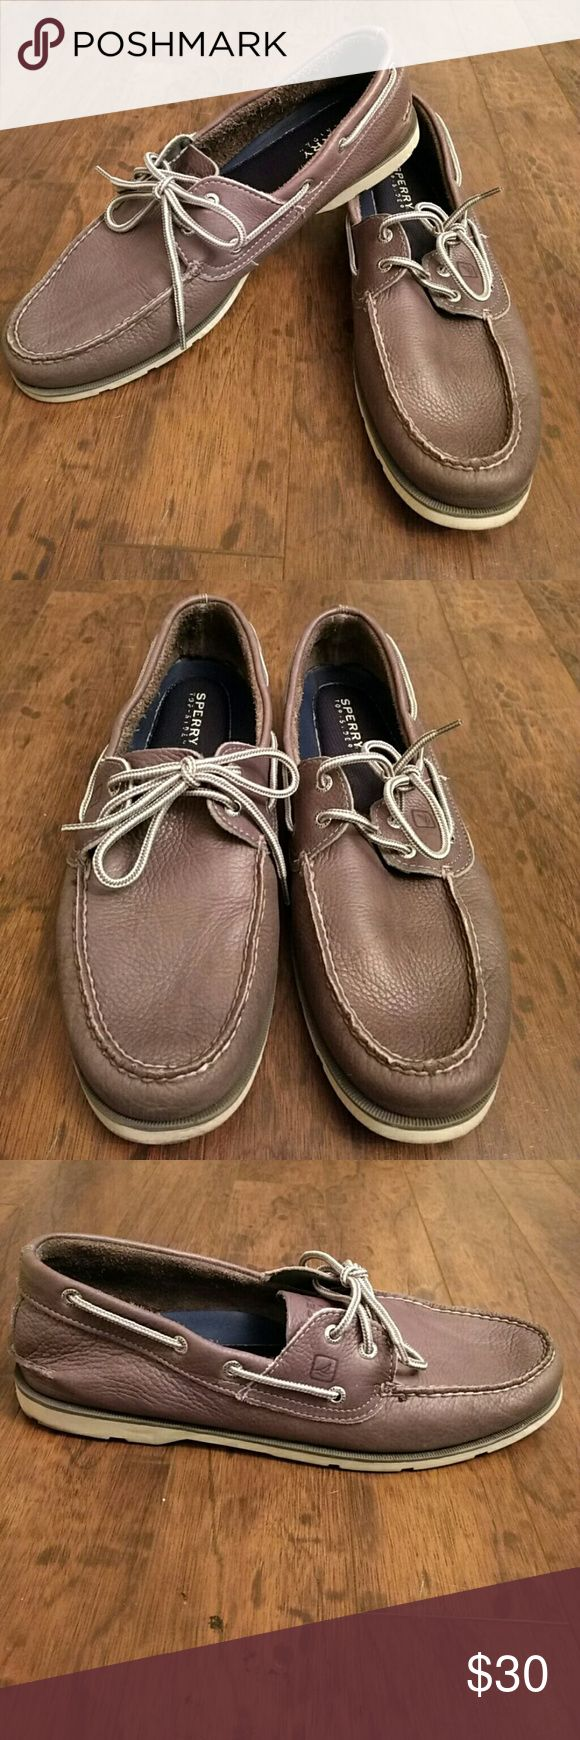 Sperry Top - Sider Grey Leather Loafers Shoes are in very good condition. They have only been worn a few times. Most wear is at the bottom of shoes, which are as pictured. Please see photos for flaws. Guaranteed authentic. Keywords: Gray  Bundle and save!   Please remember when sending offers that Poshmark takes 20% of sales. Sperry Top-Sider Shoes Loafers & Slip-Ons